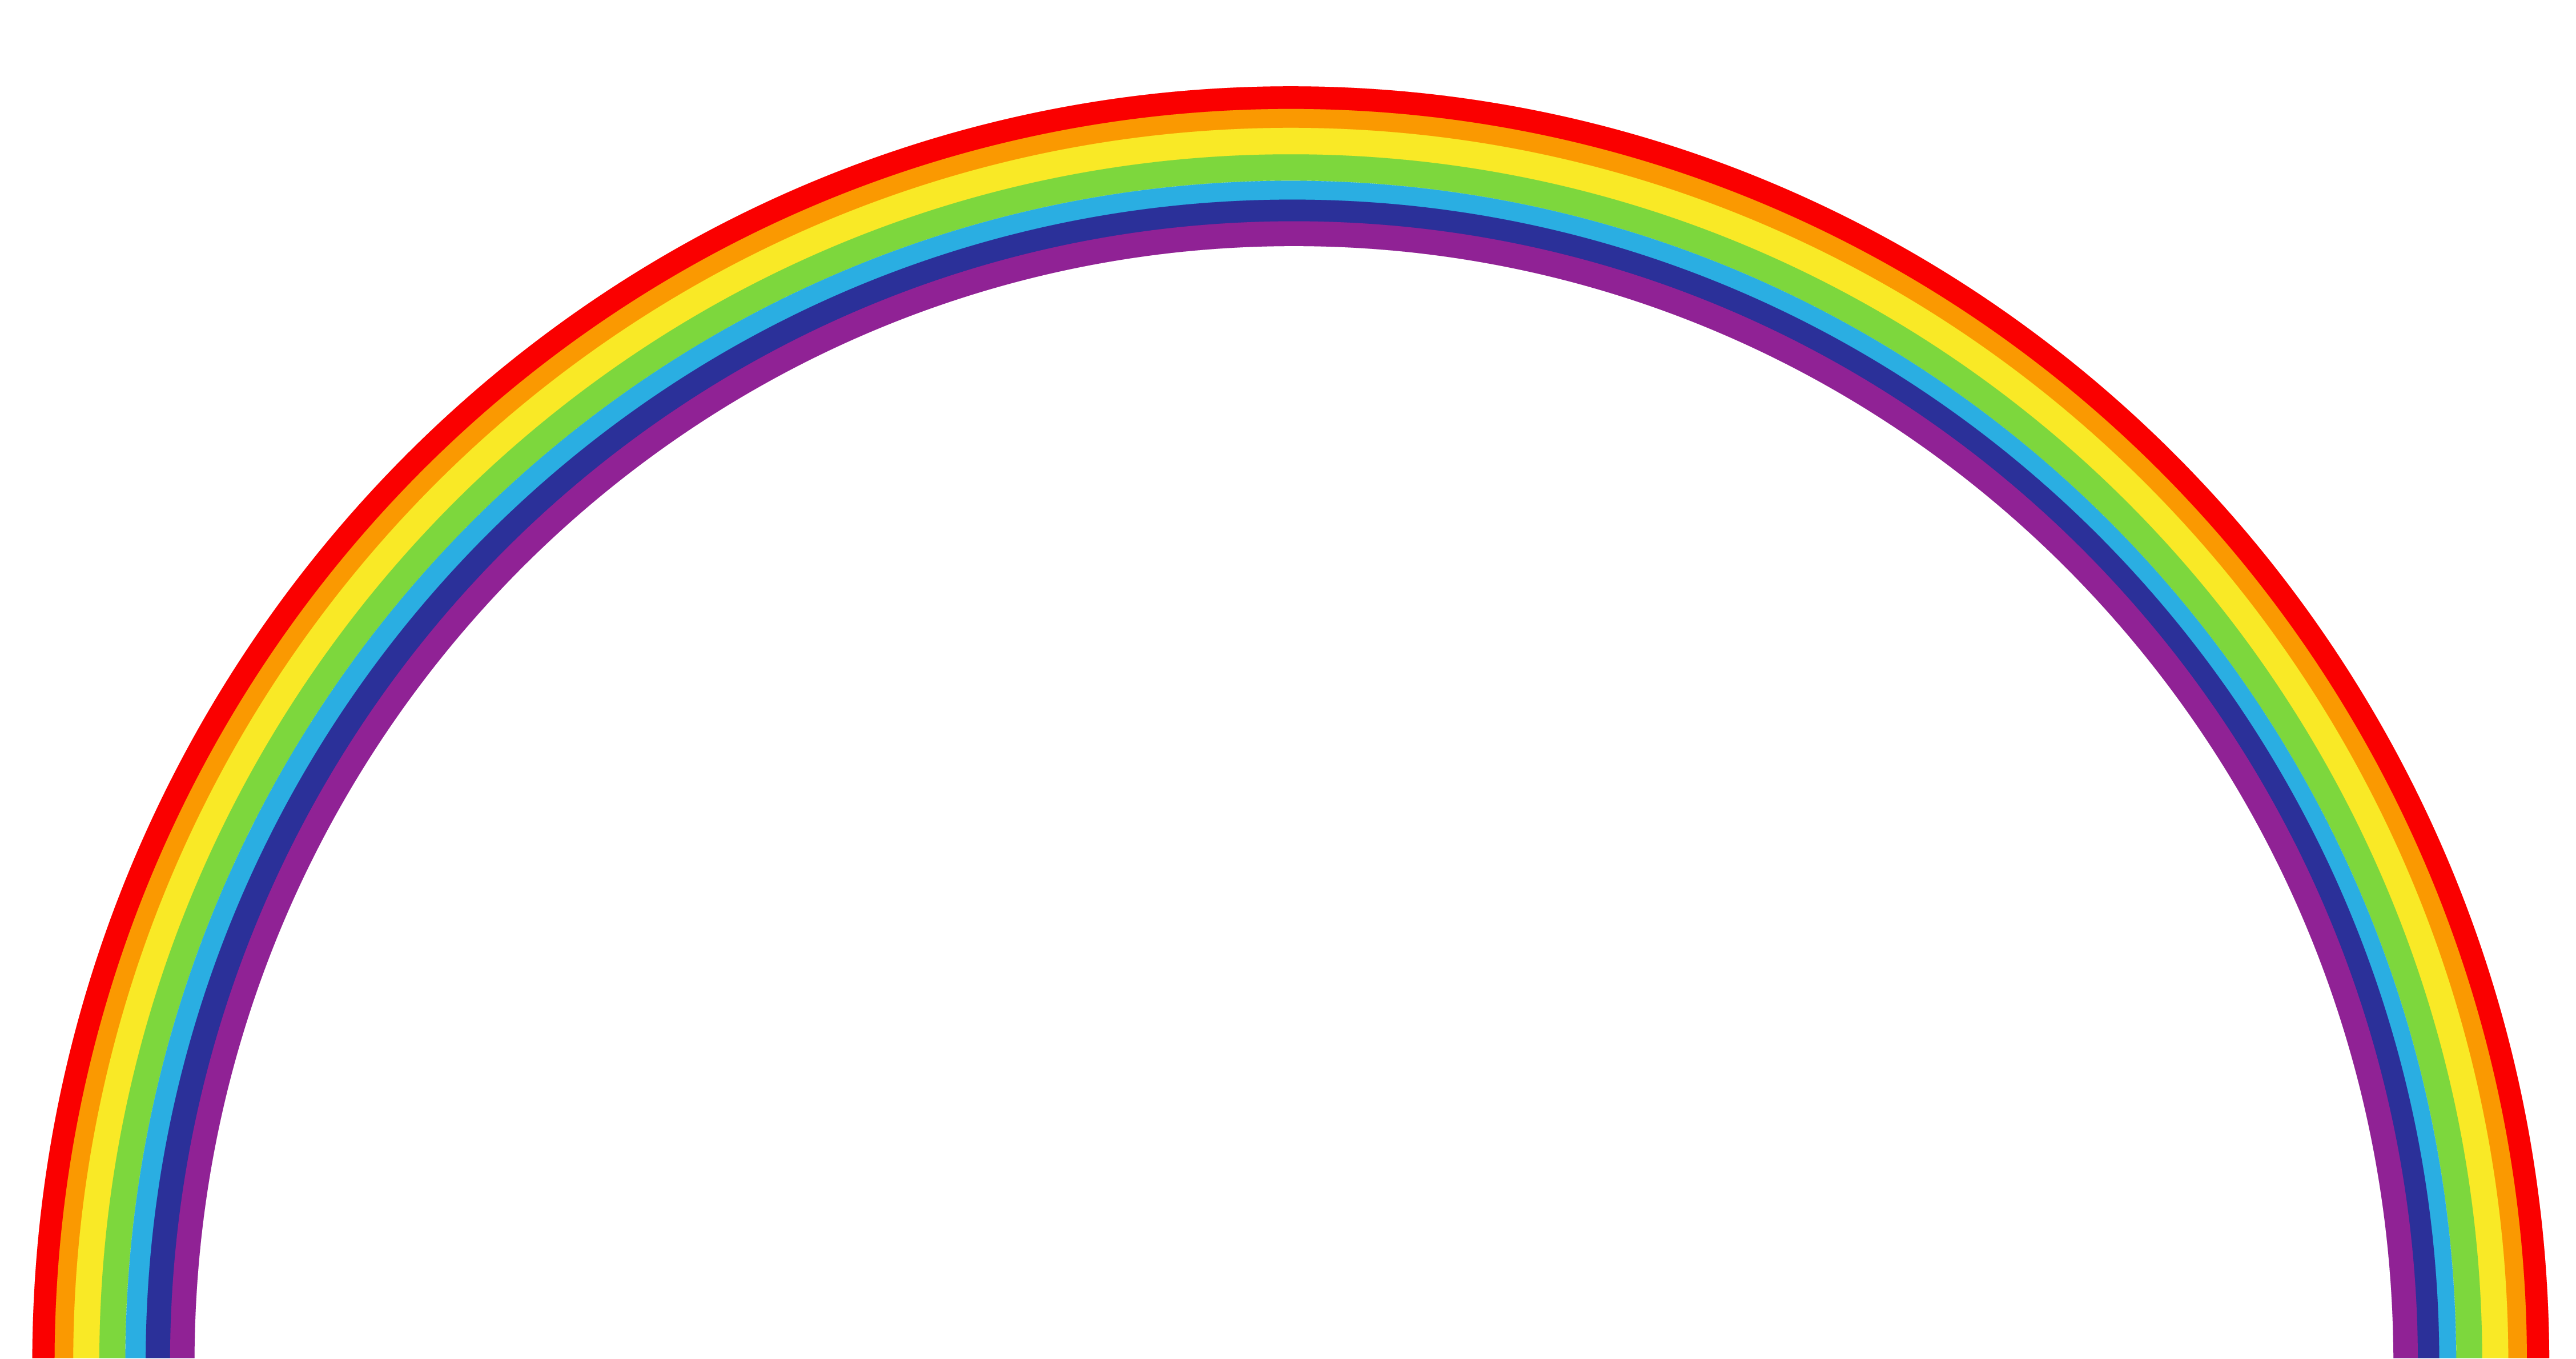 banner royalty free stock . Black and white rainbow clipart